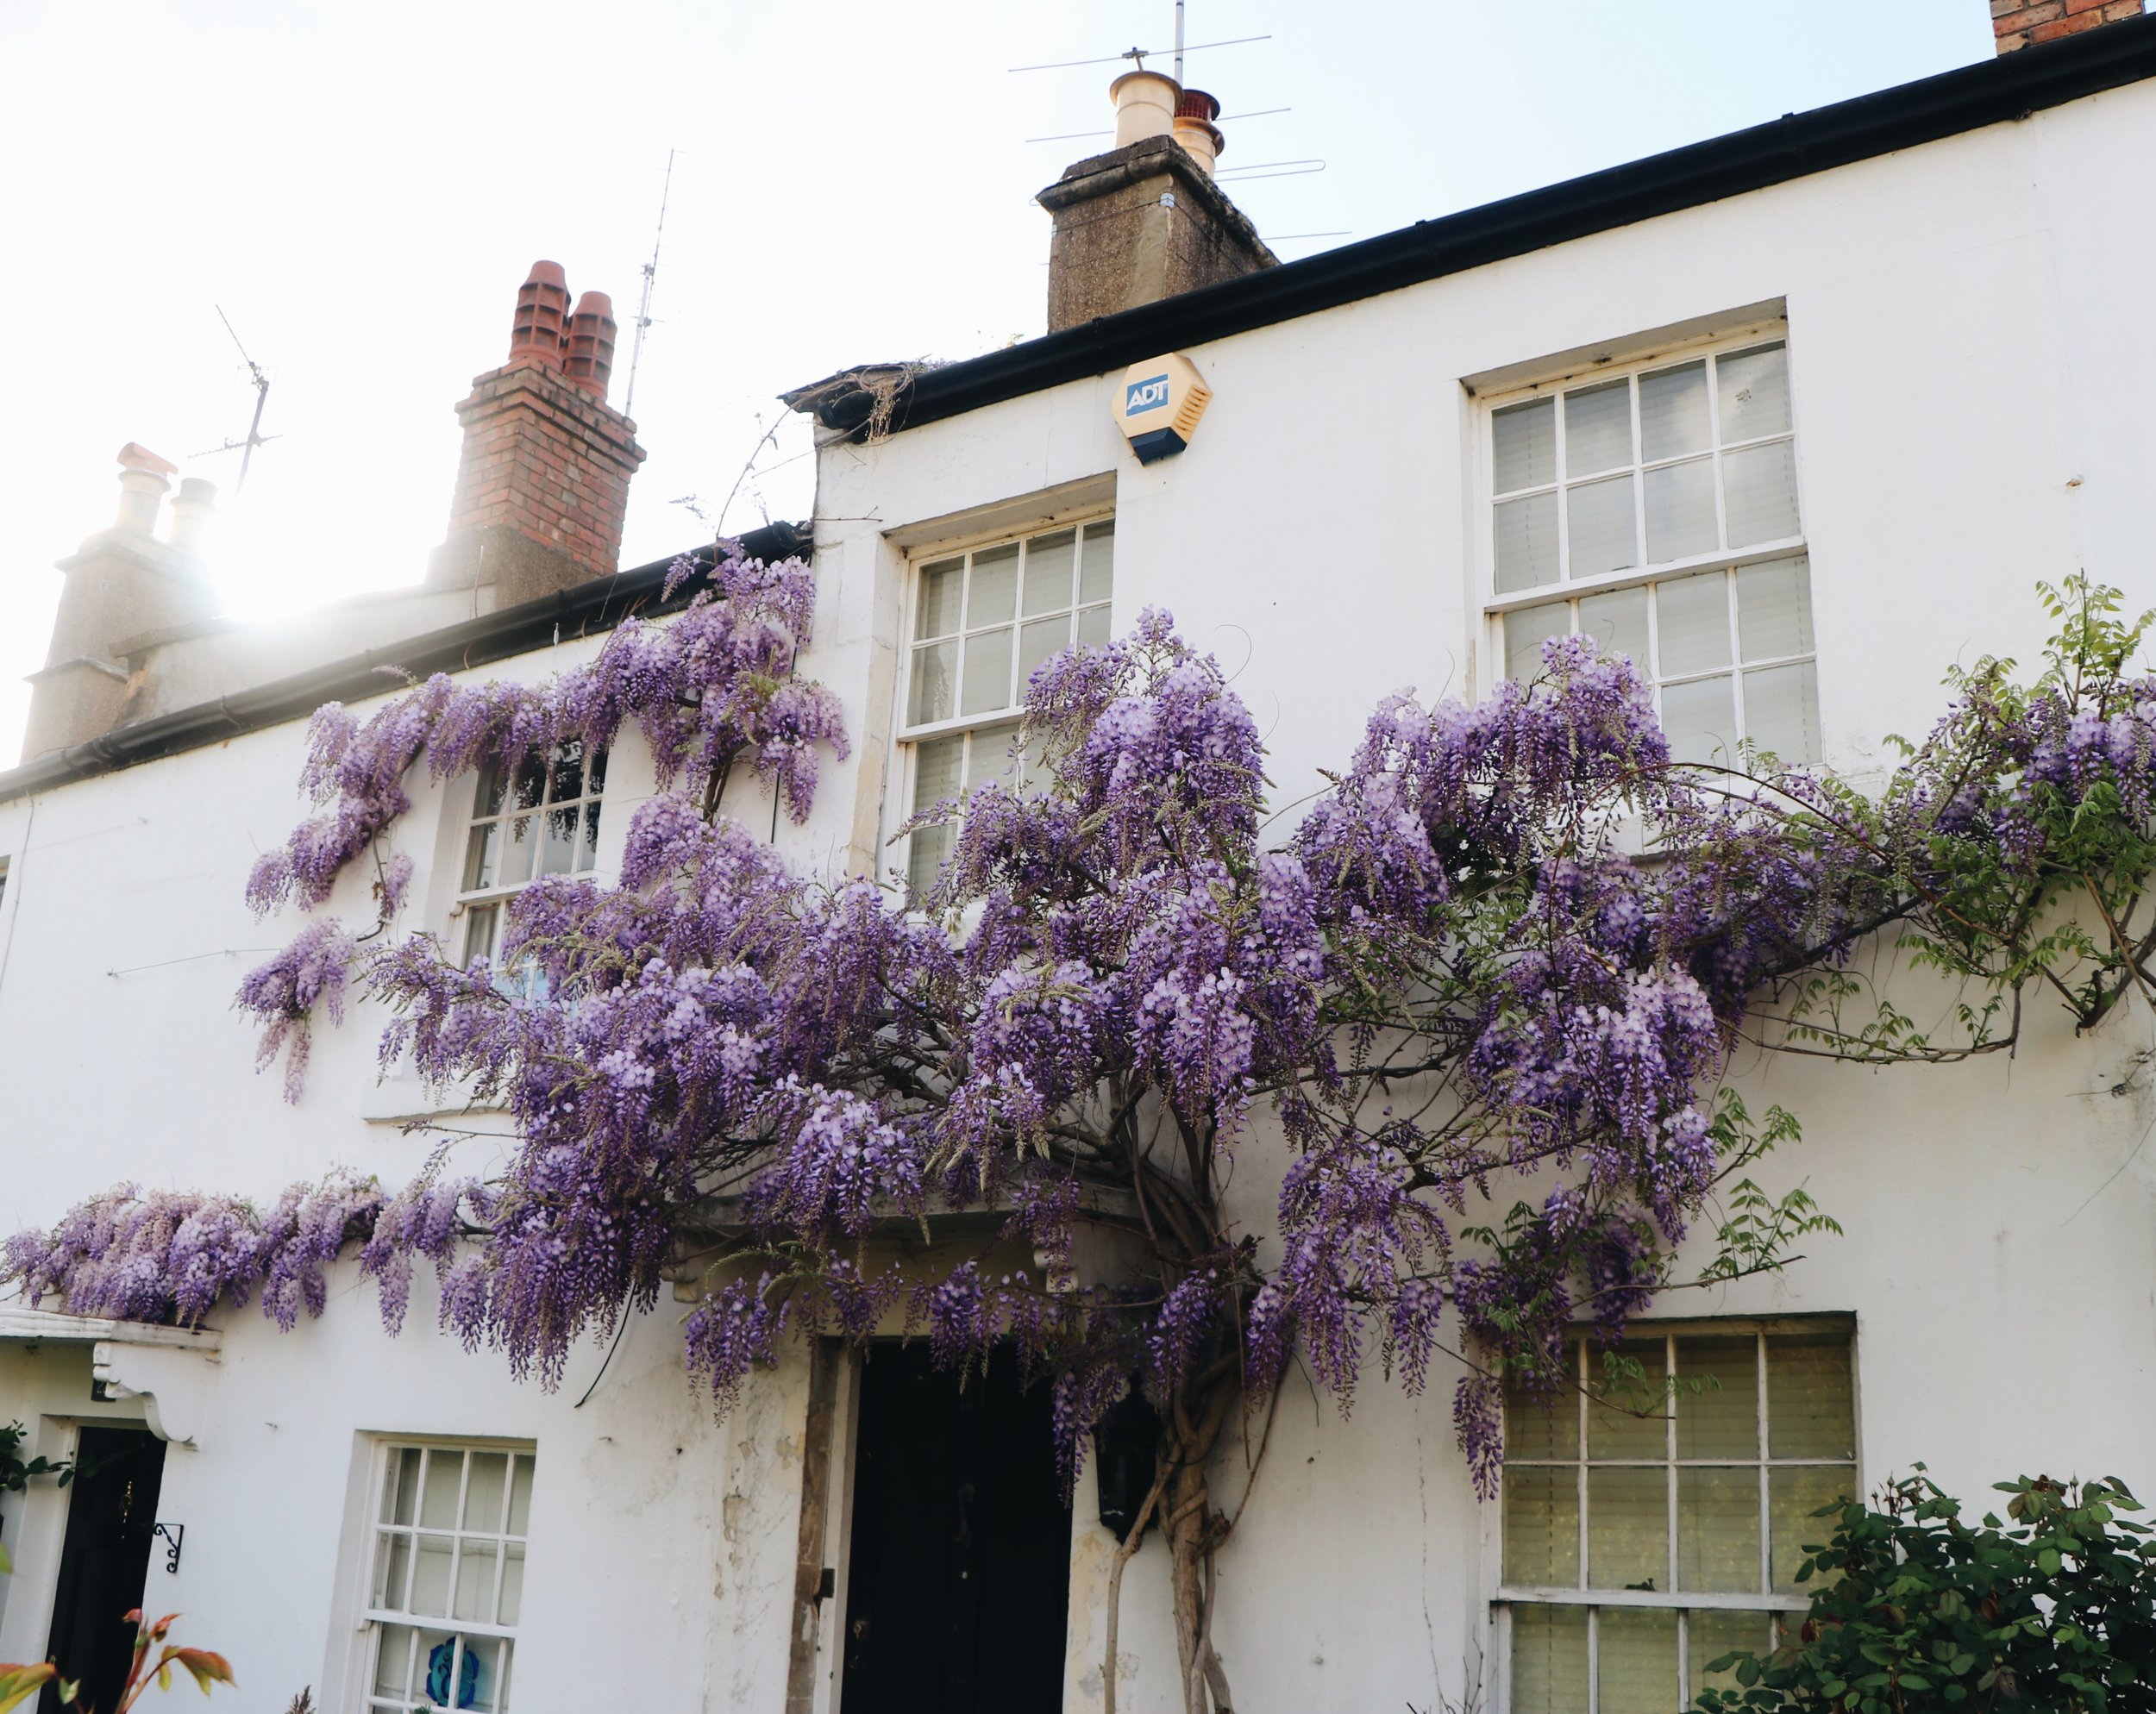 Wisteria in Richmond